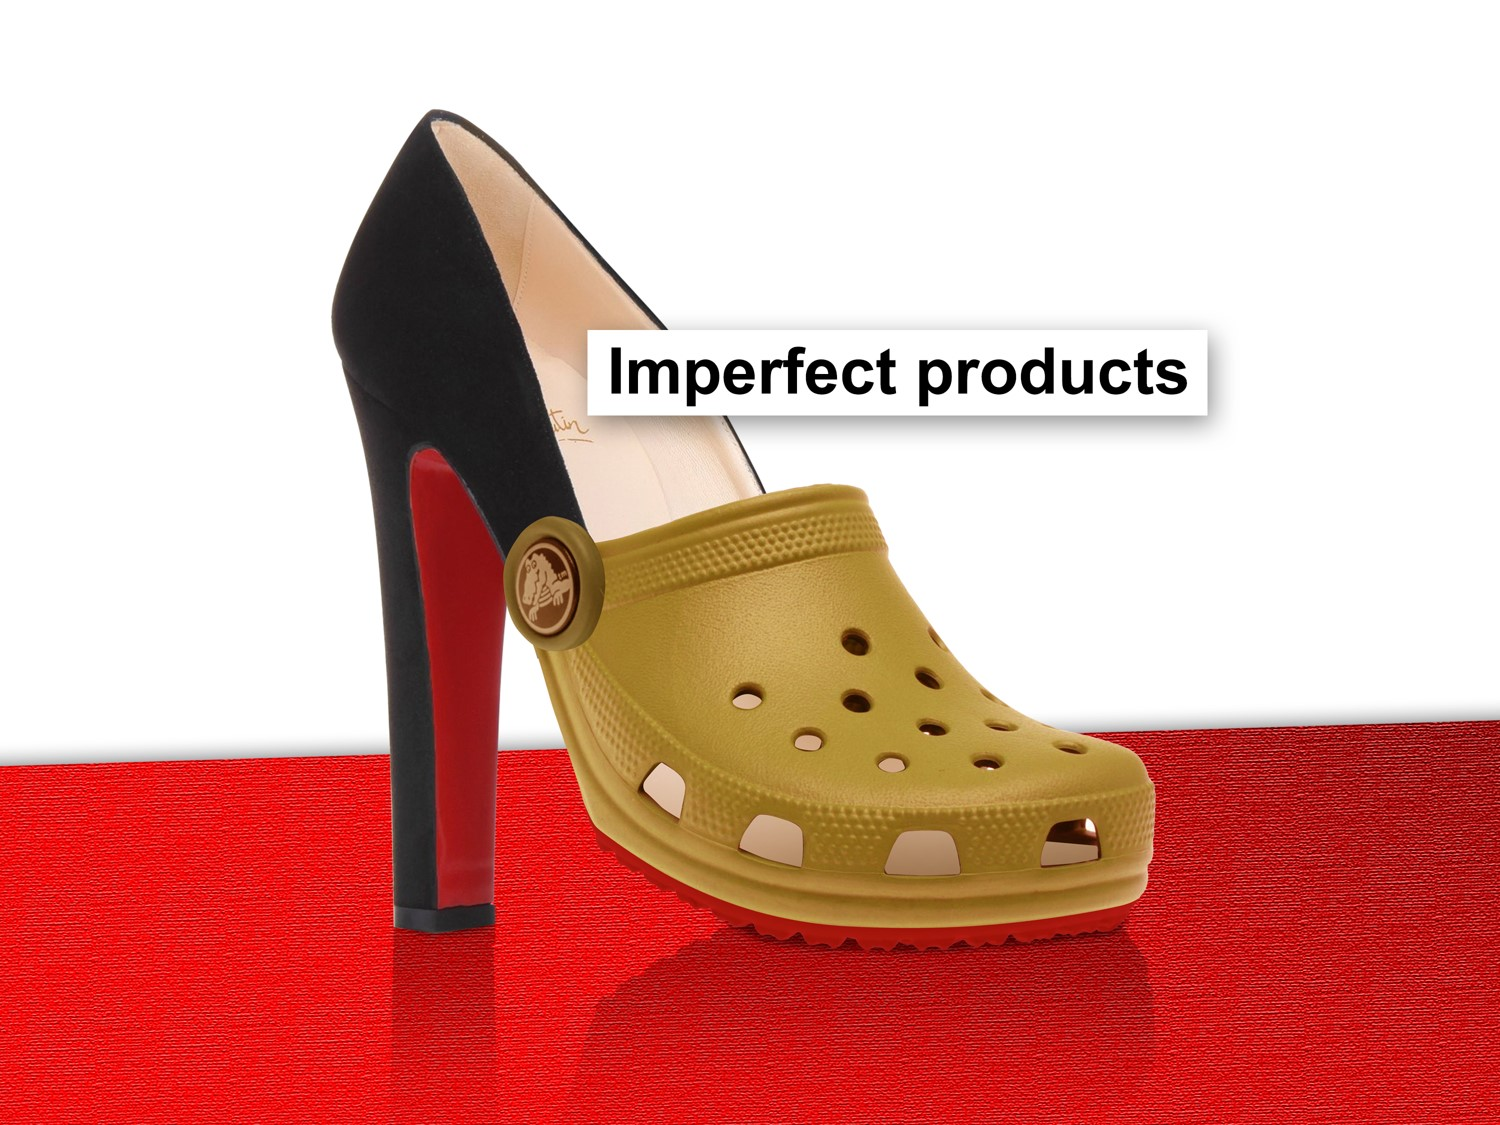 Imperfect products